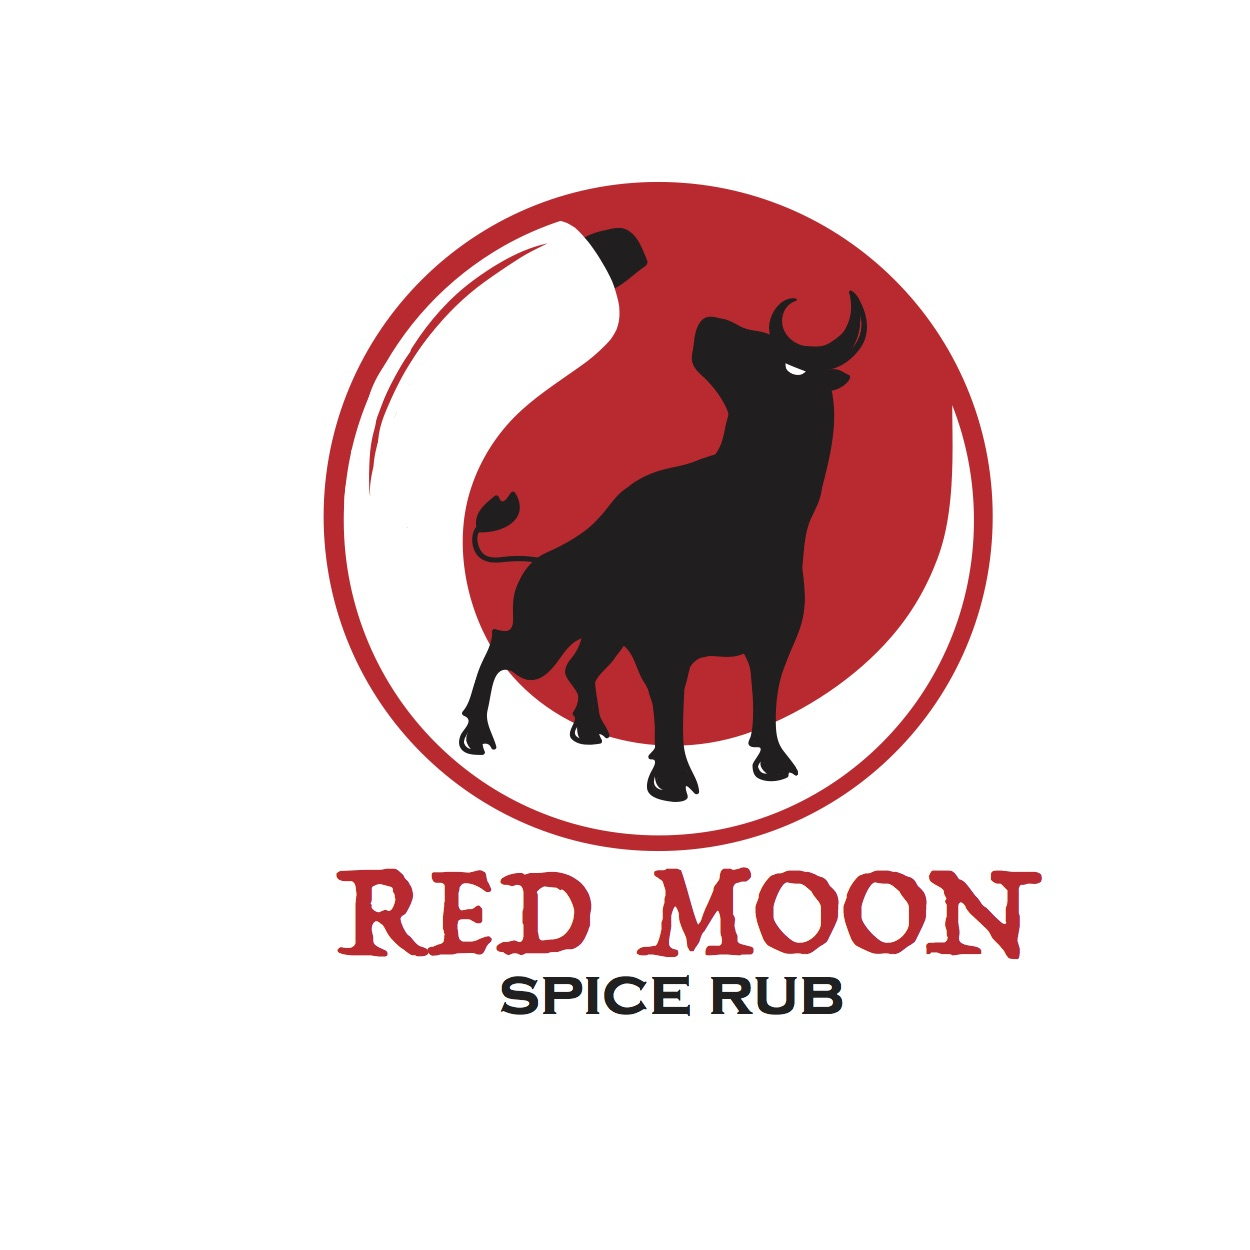 Red Moon Spice Rub logo